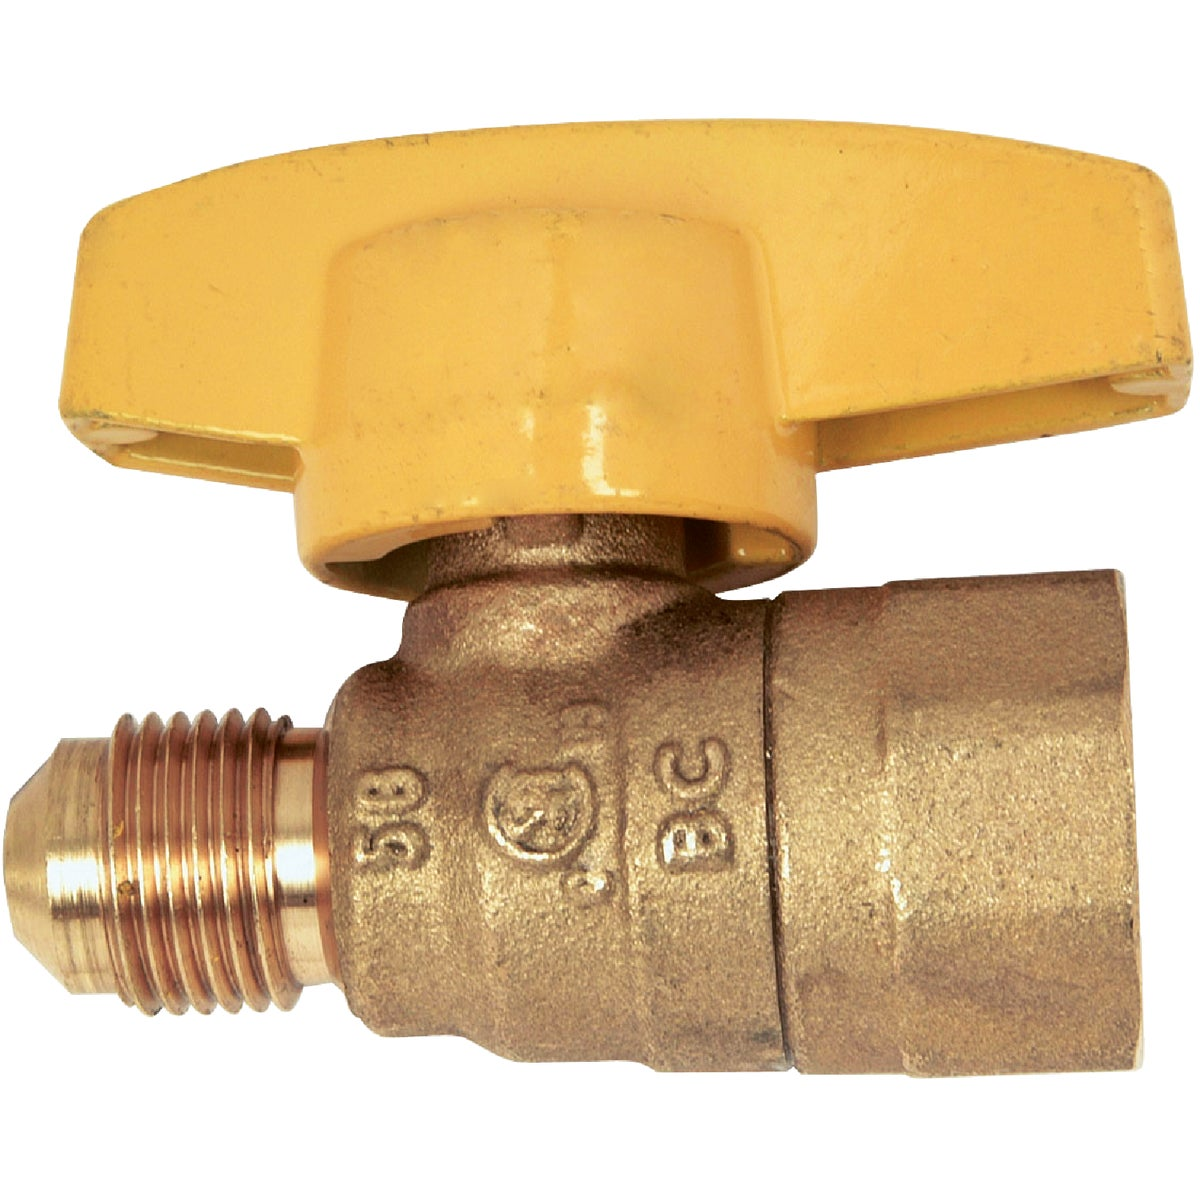 3/8X1/2 GAS VALVE - PSSL-12 by Brass Craft